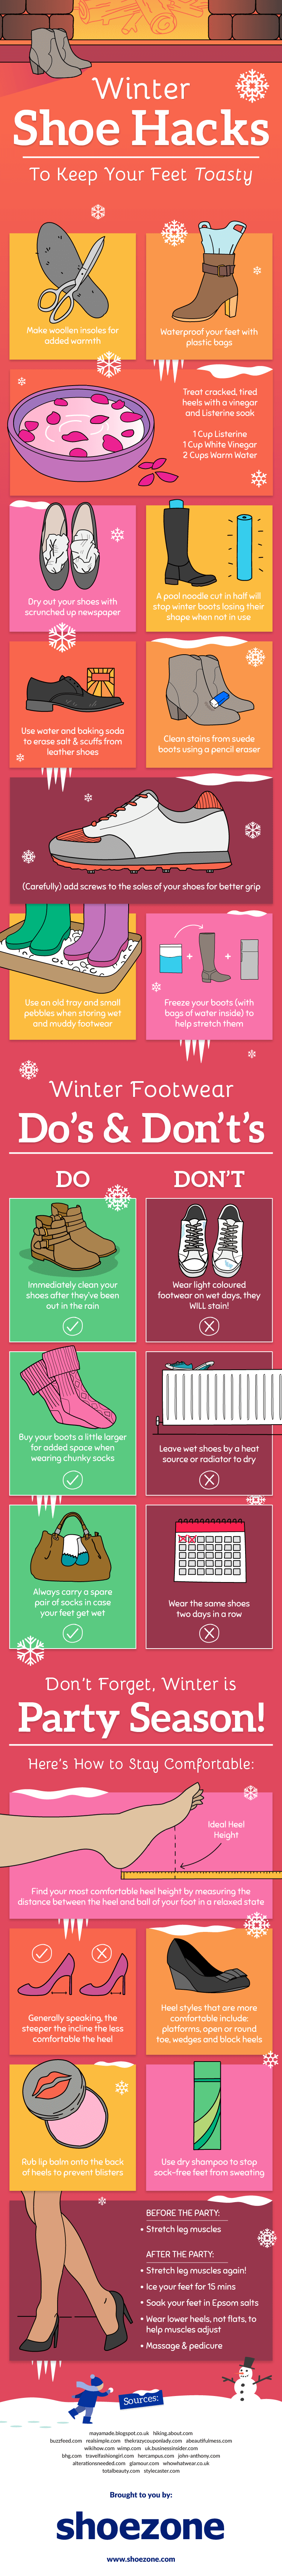 Winter Shoe Hacks